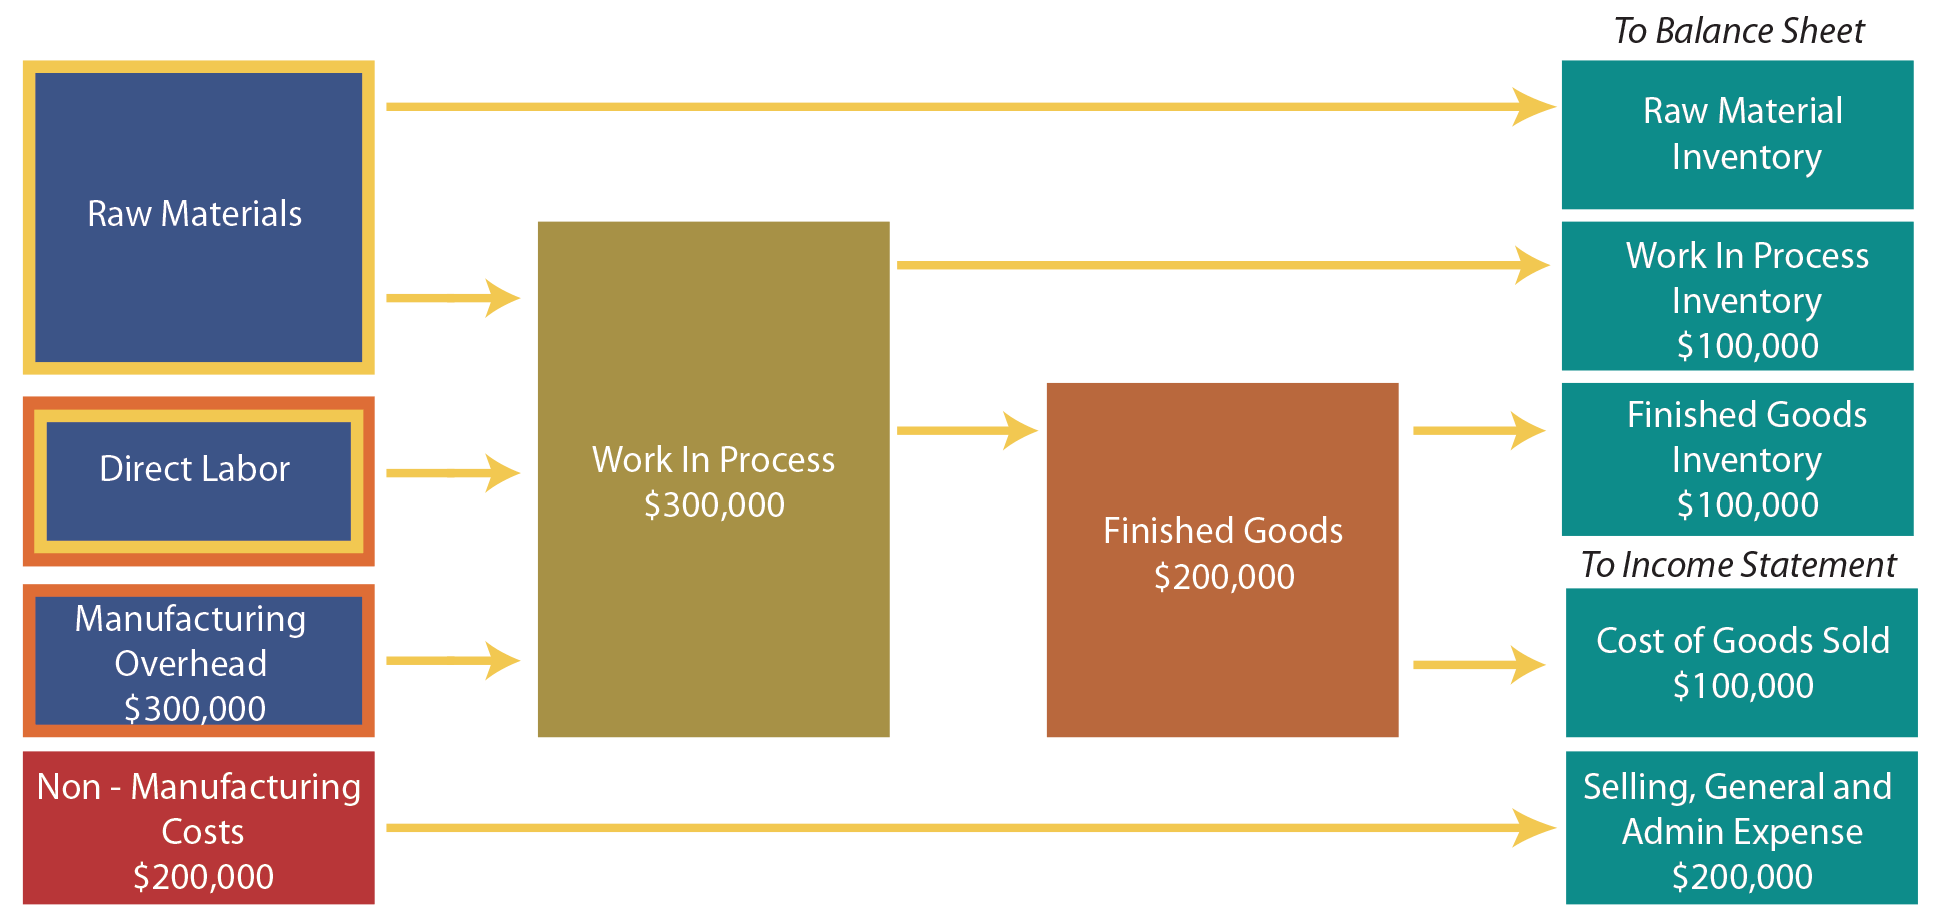 Process Flow Diagram Rules Not Lossing Wiring Raw Material Financial Statement Issues That Are Unique To Business Chart And